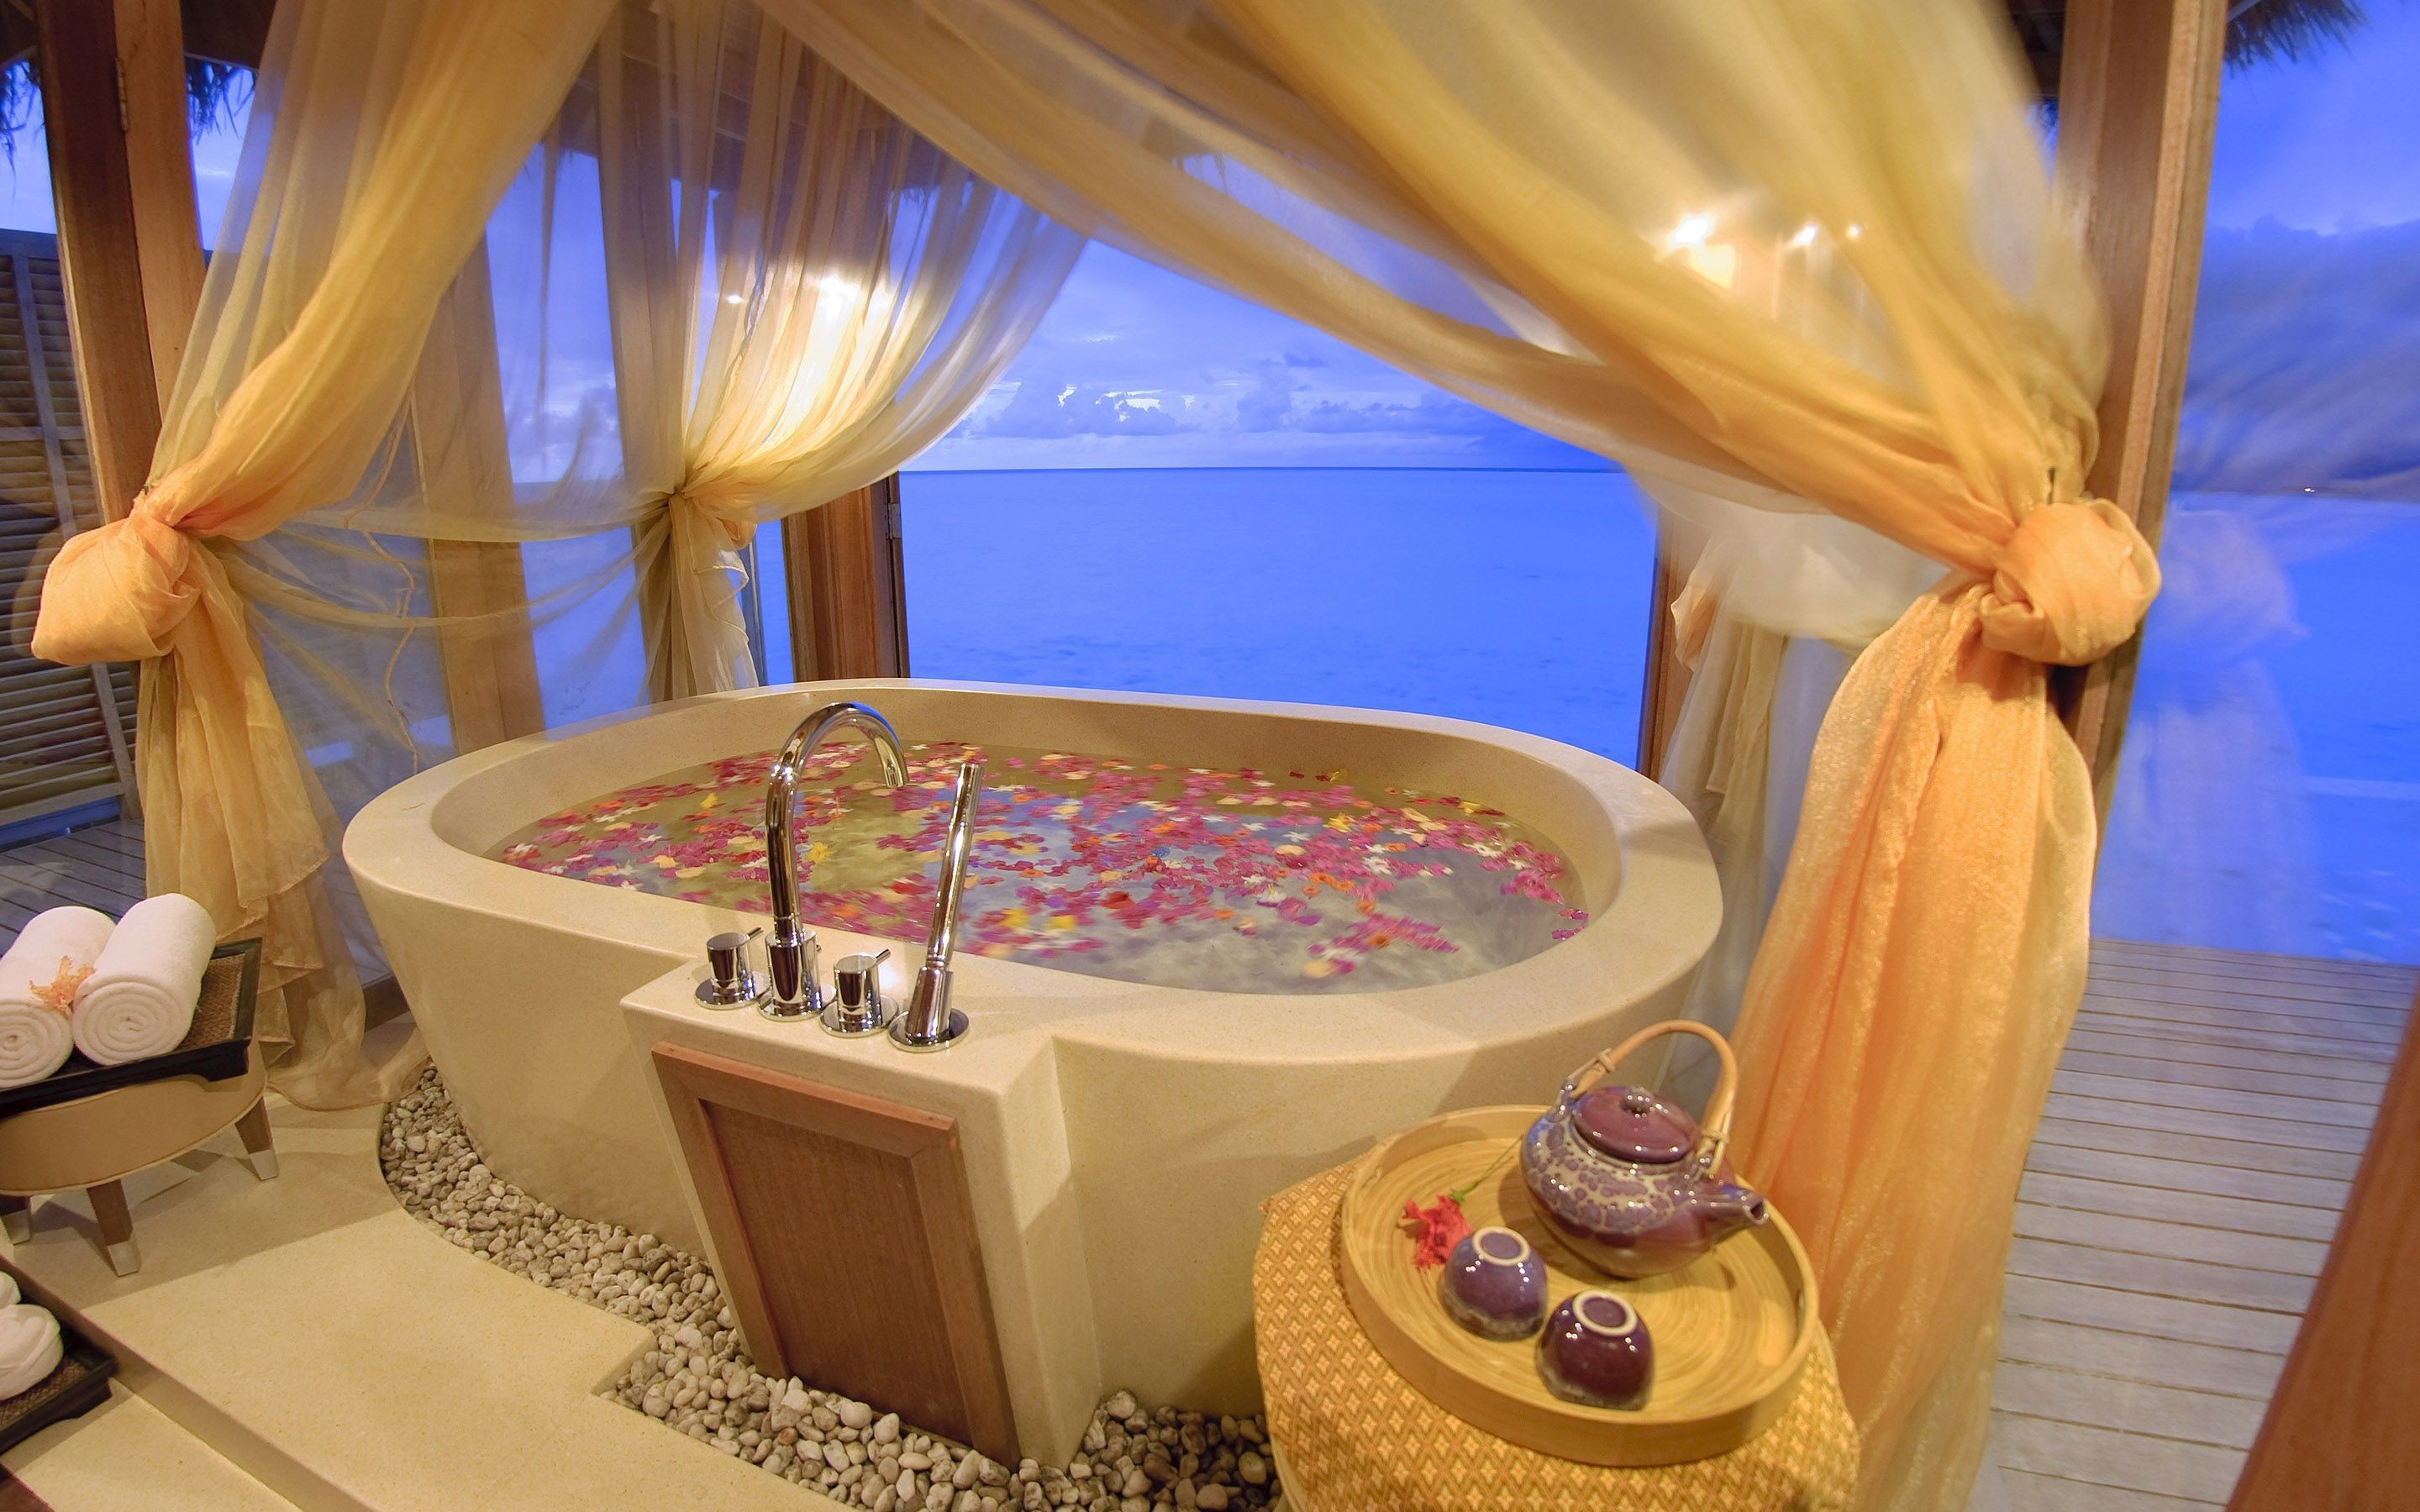 … Relaxing spa